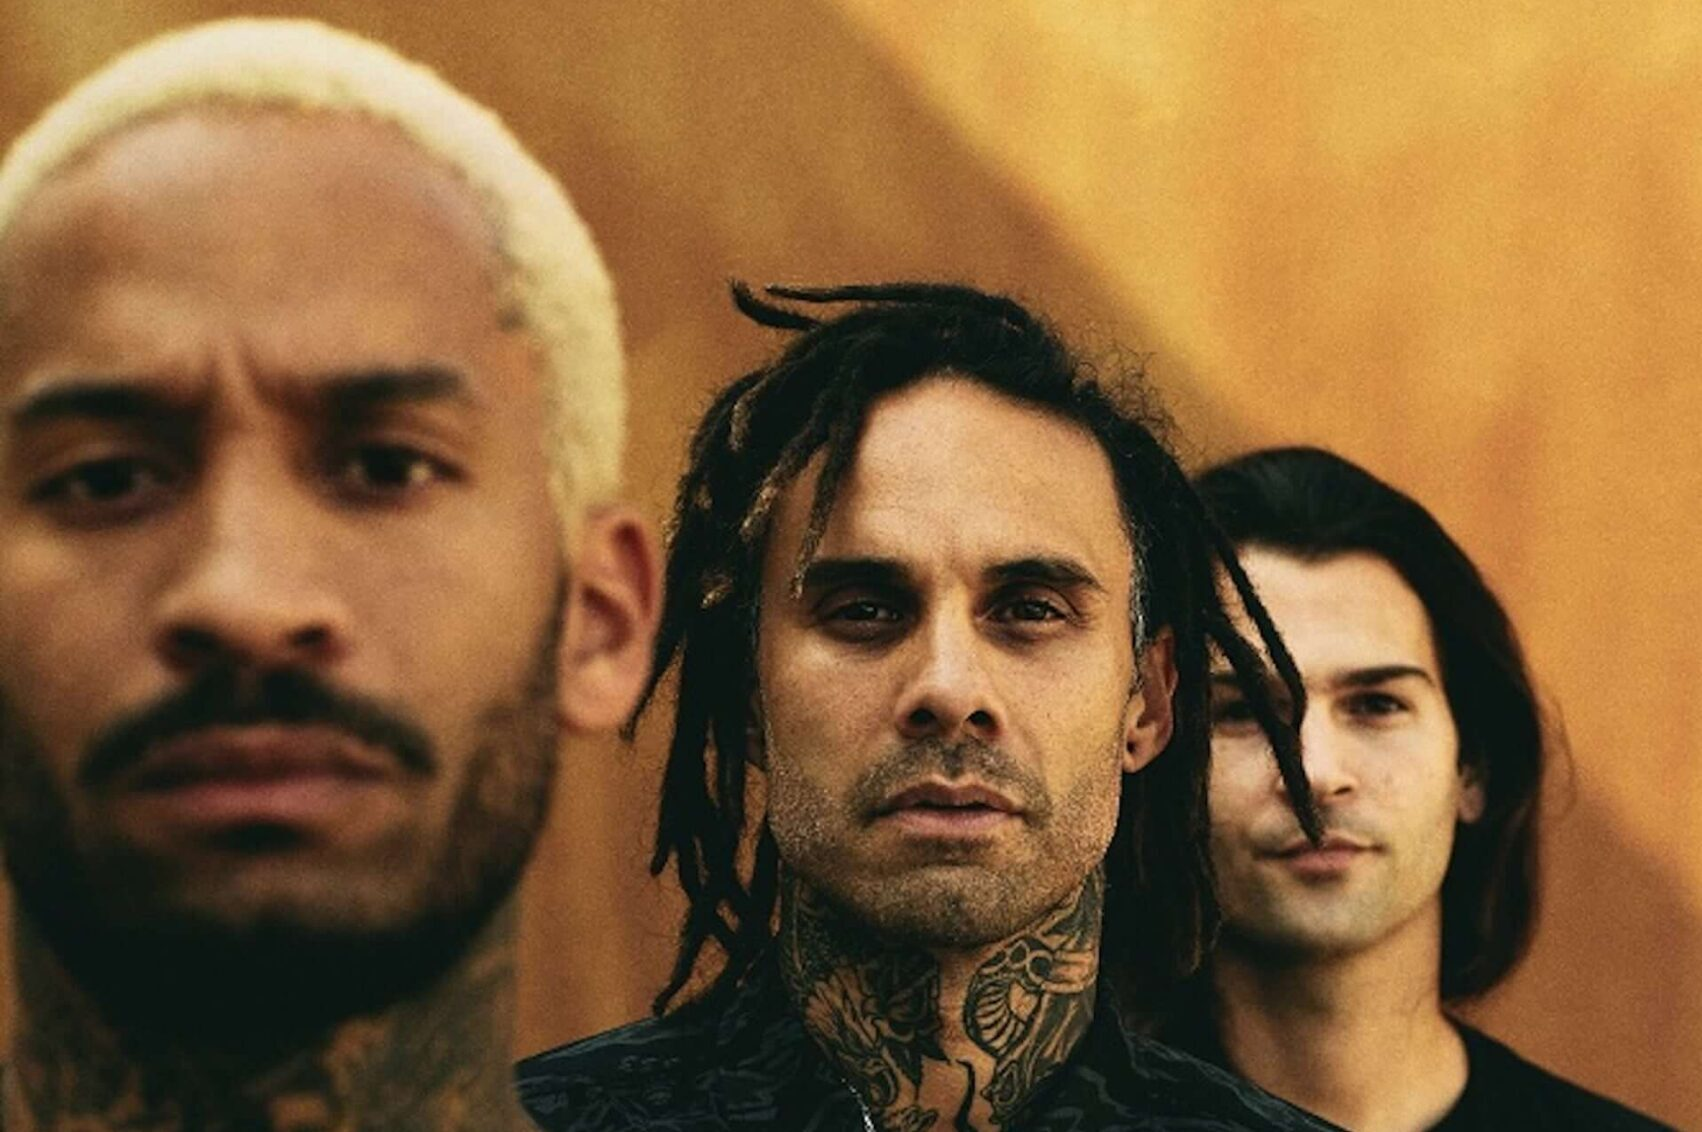 FEVER 333 ANNOUNCE 'WRONG GENERATION TOWNHALL' EVENT